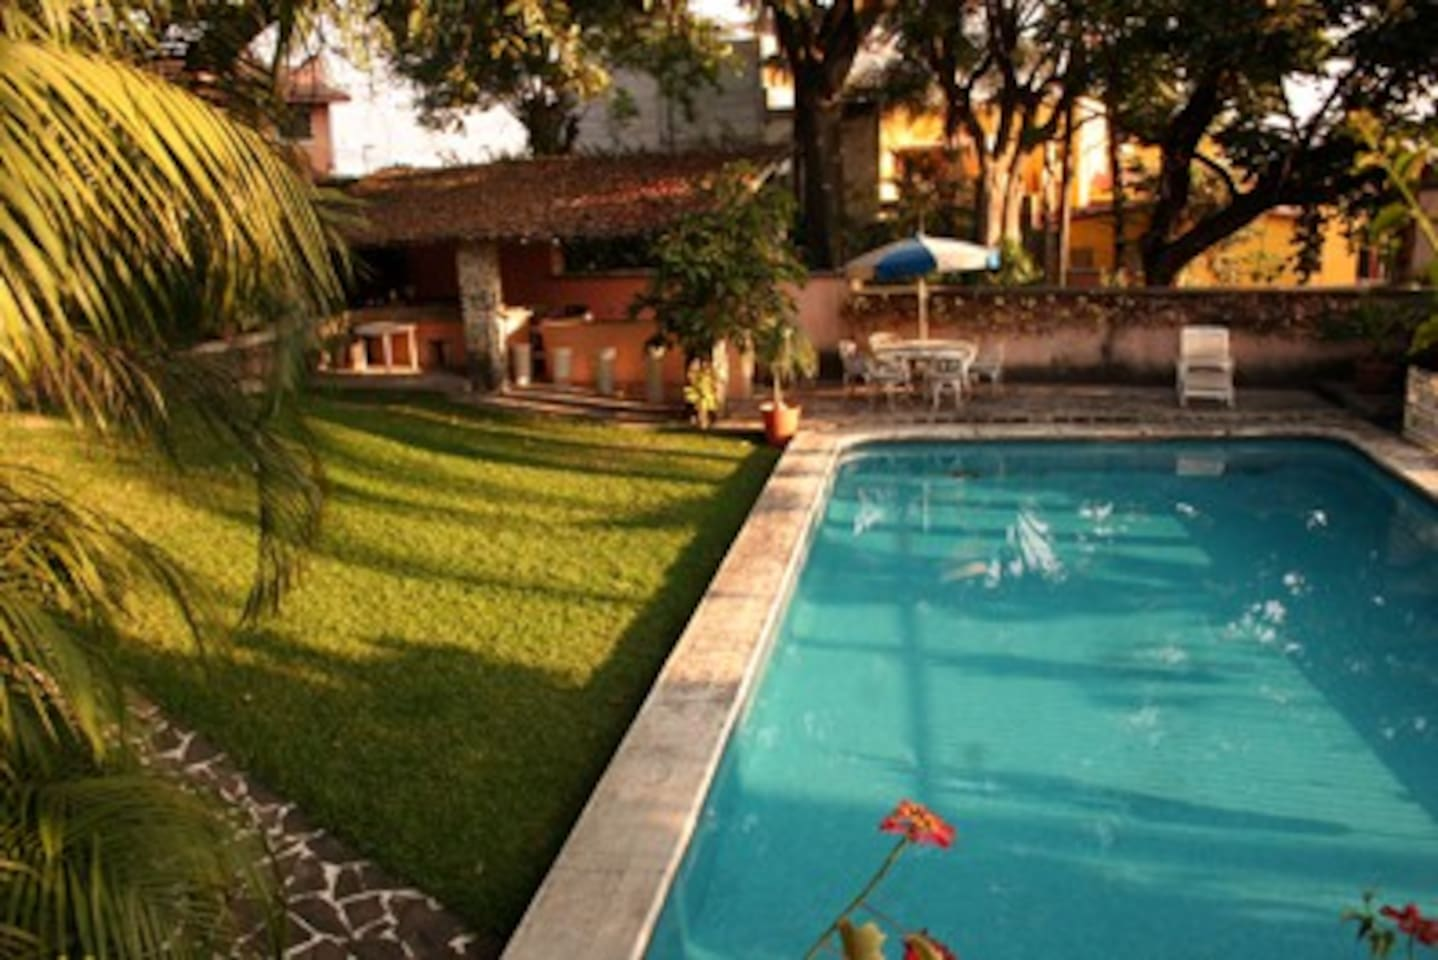 Our swimming pool and BBQ area